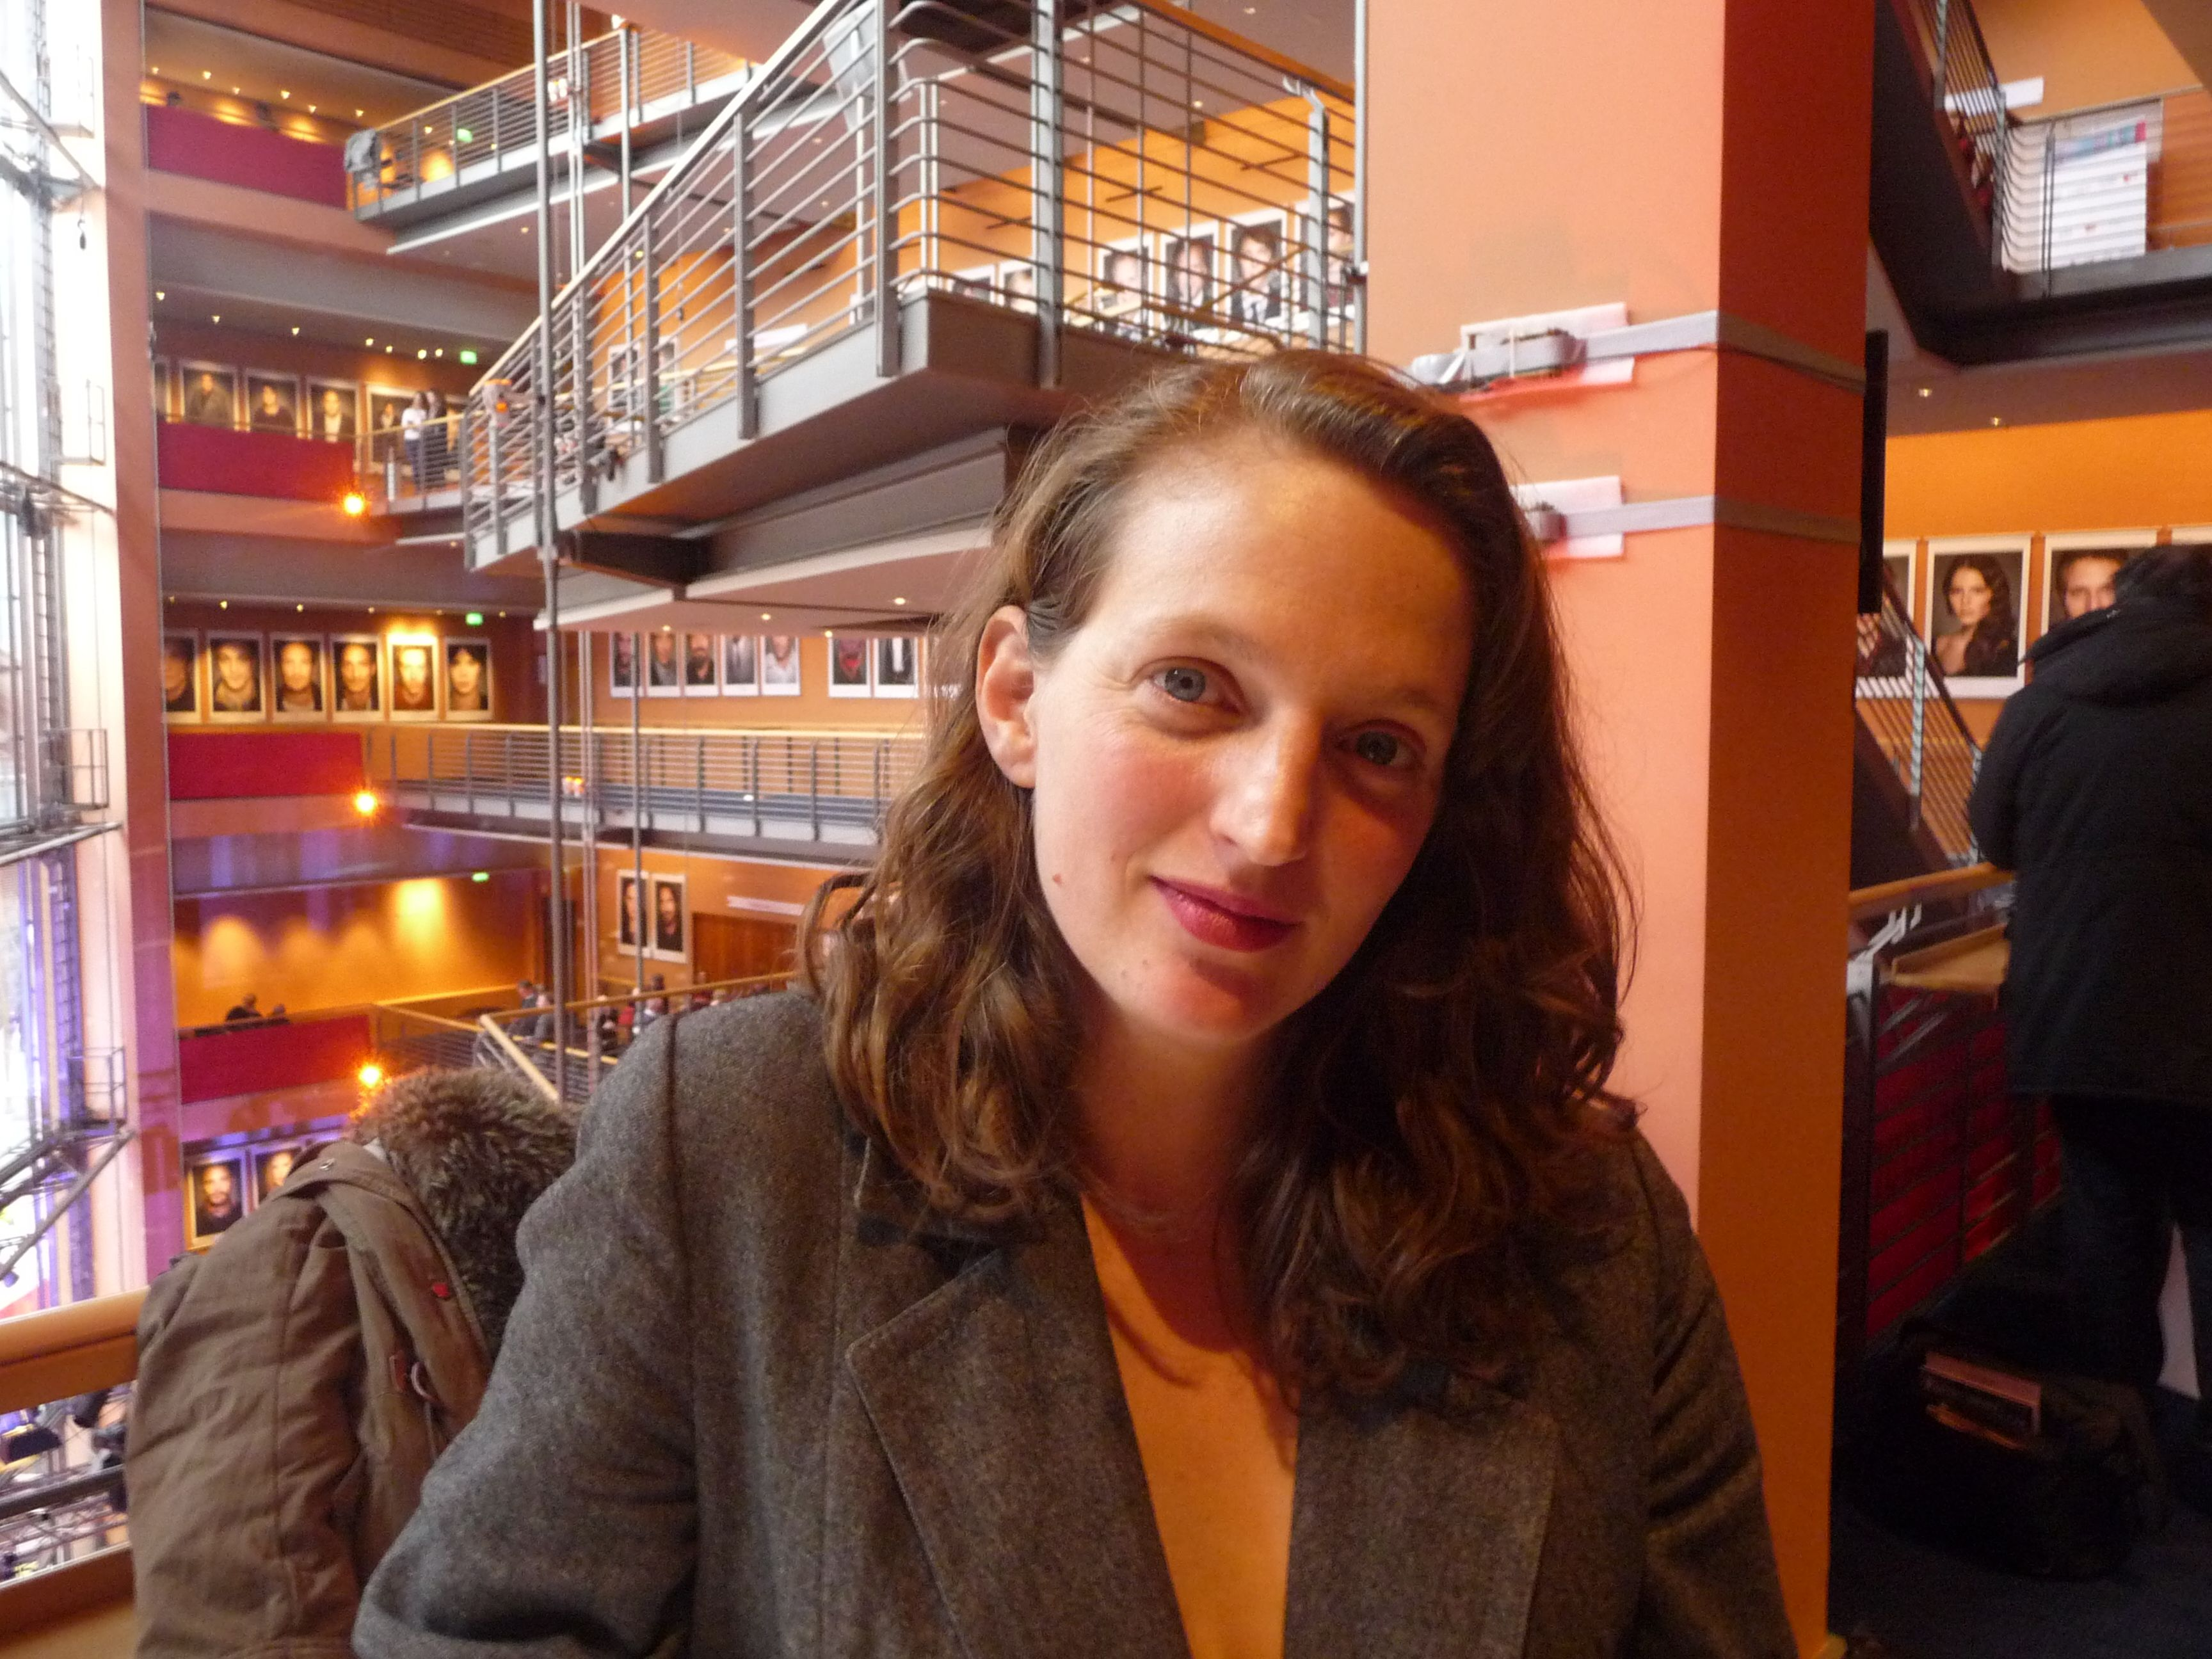 We got to spend time with the lovely director of the outstanding feature film 'Petting Zoo,' Micha Magee at this year's #Berlinale2015